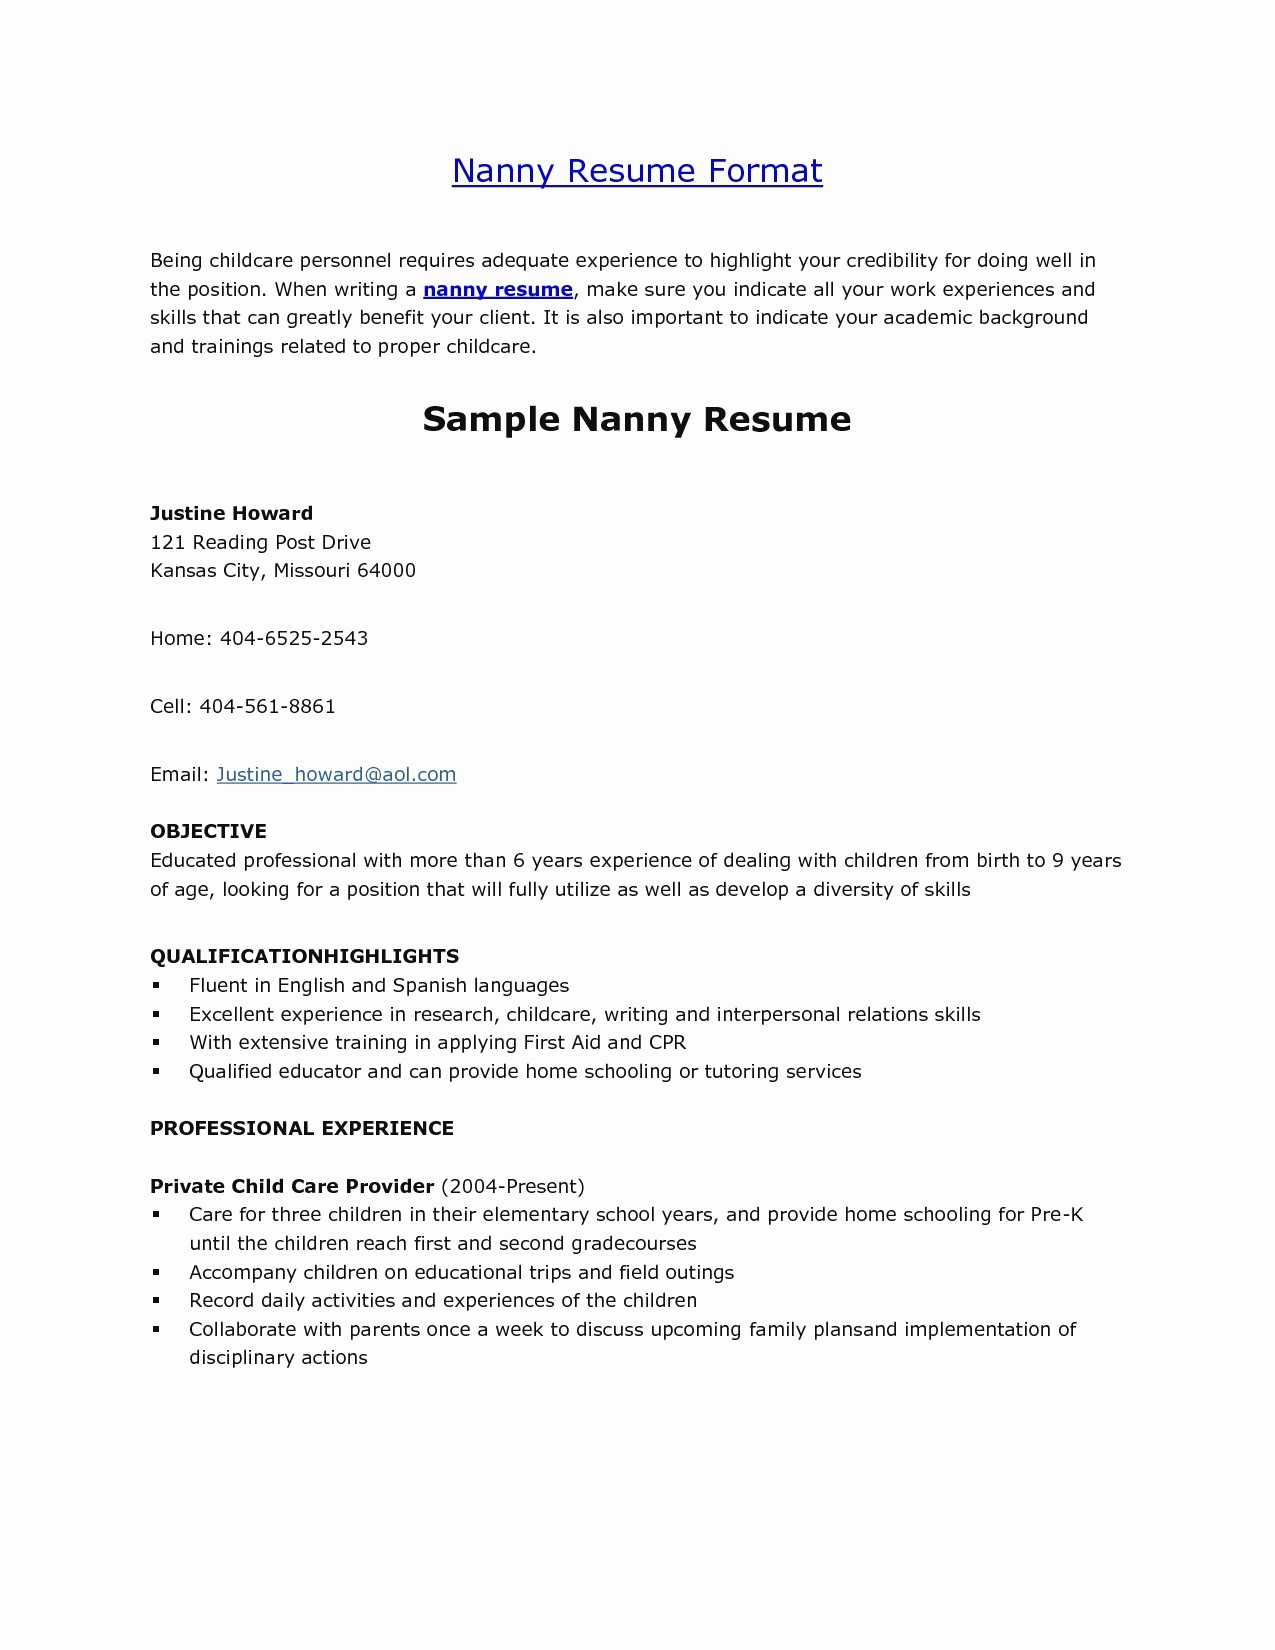 Resume for Peace Corps Example - Peace Corps Resume